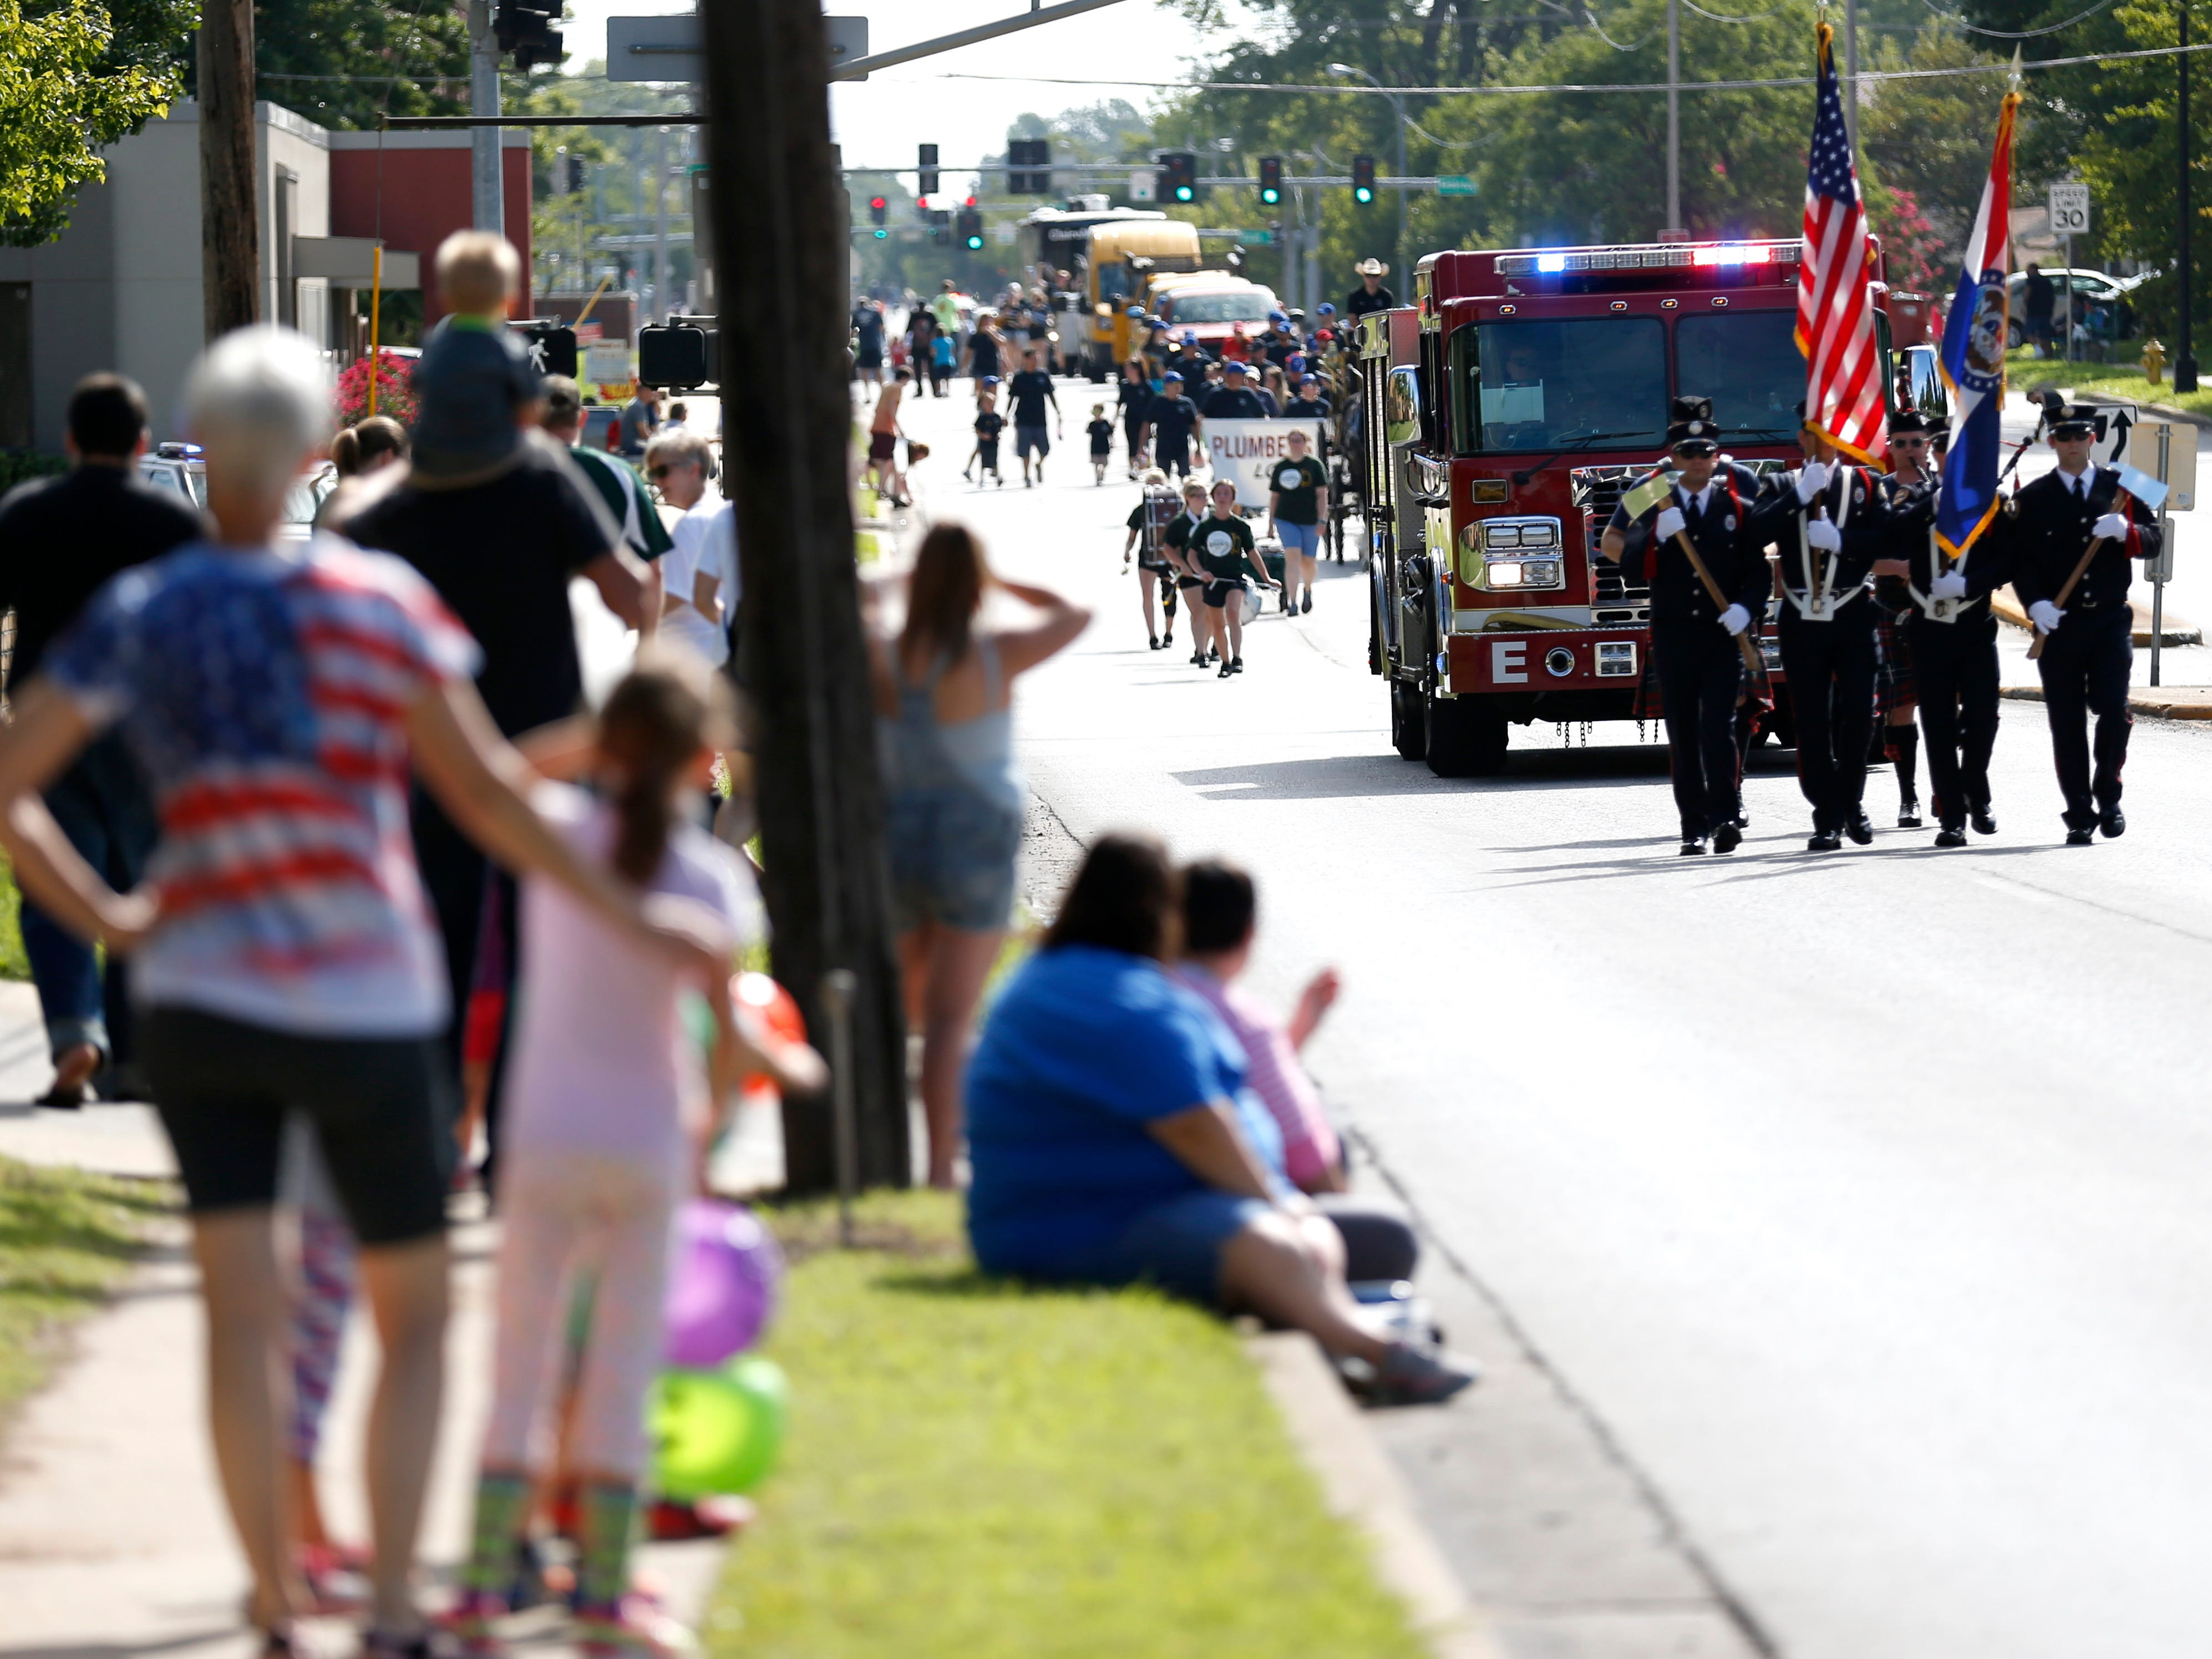 People line the streets as the 2018 Labor Day Parade passes by on Monday, Sept. 3, 2018.